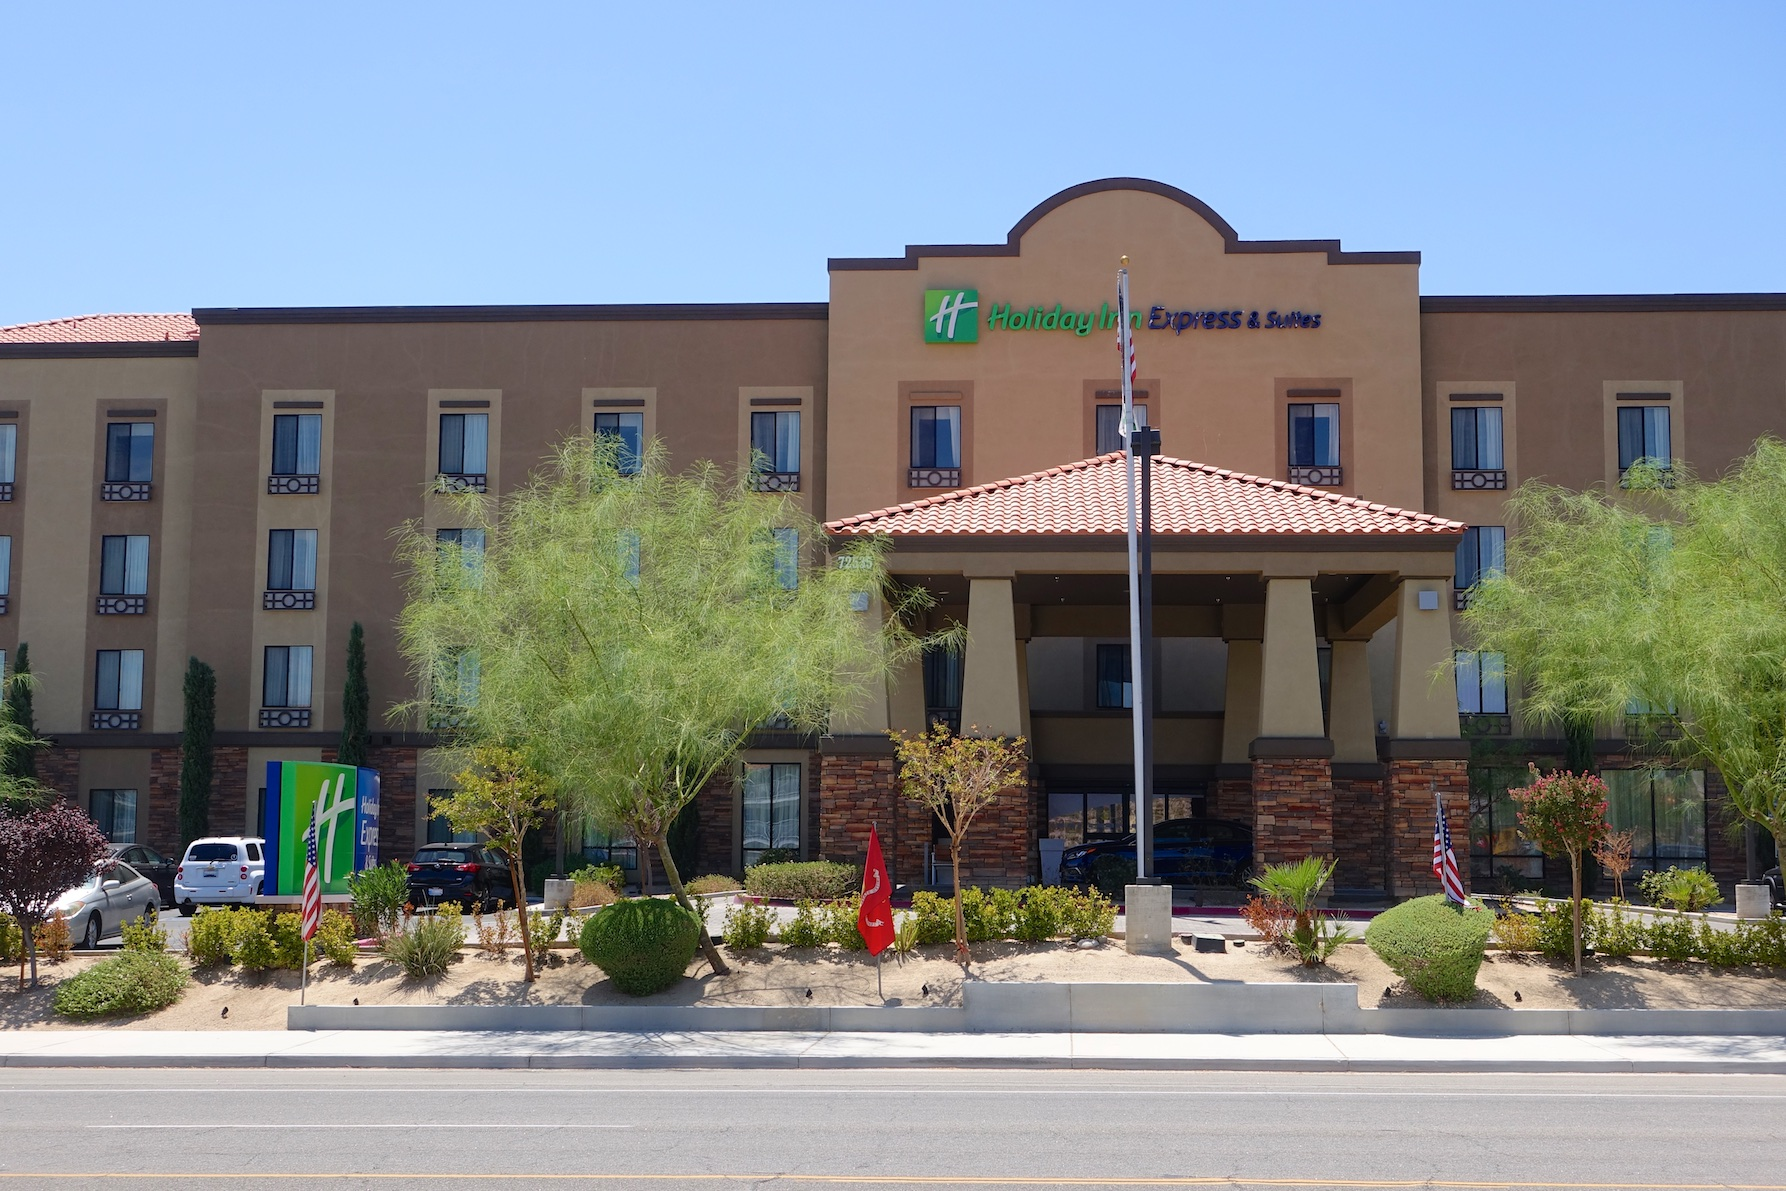 Holiday Inn Express & Suites, Twentynine Palms